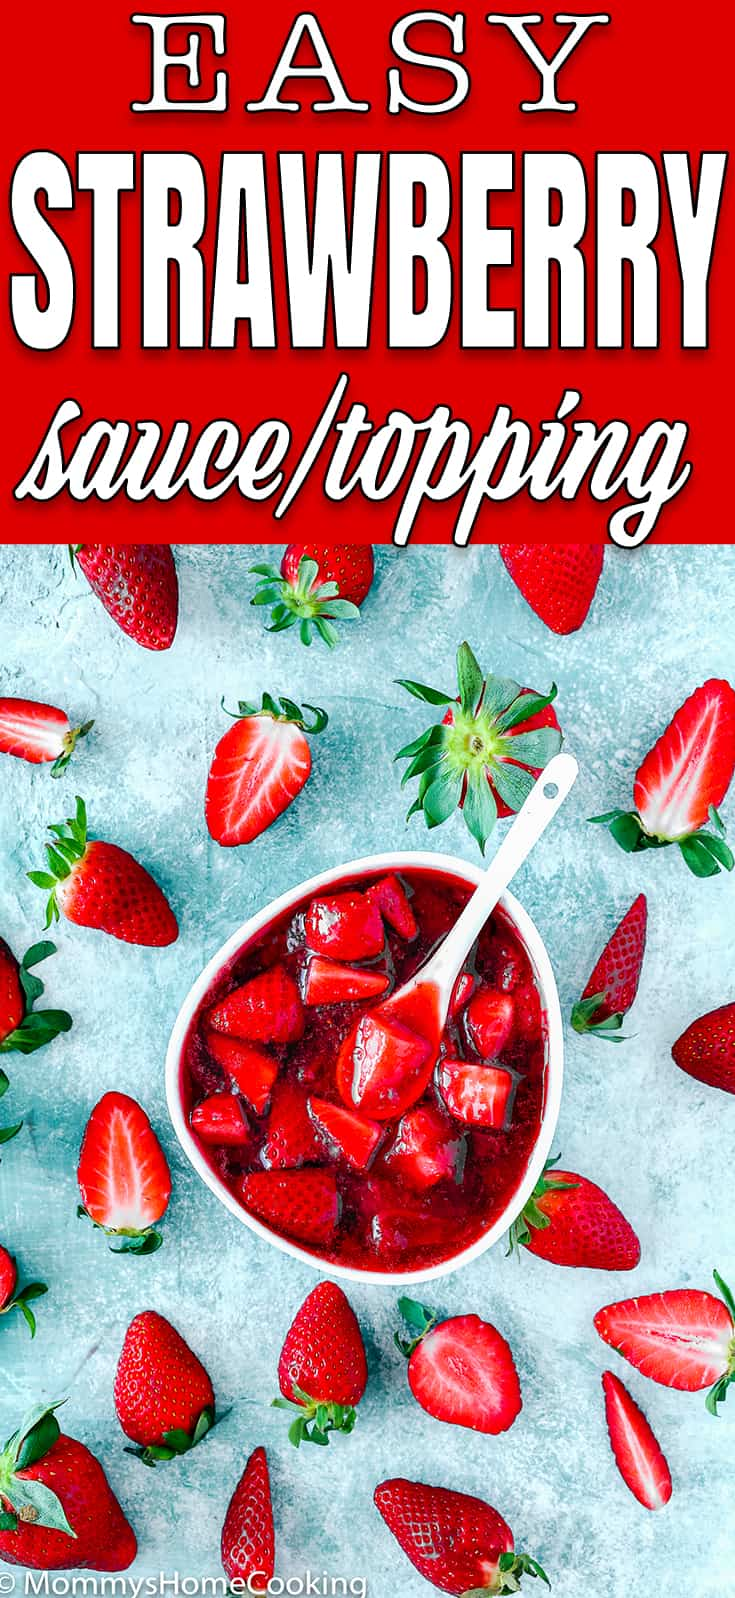 Strawberry sauce/topping in a white bowl and fresh strawberries